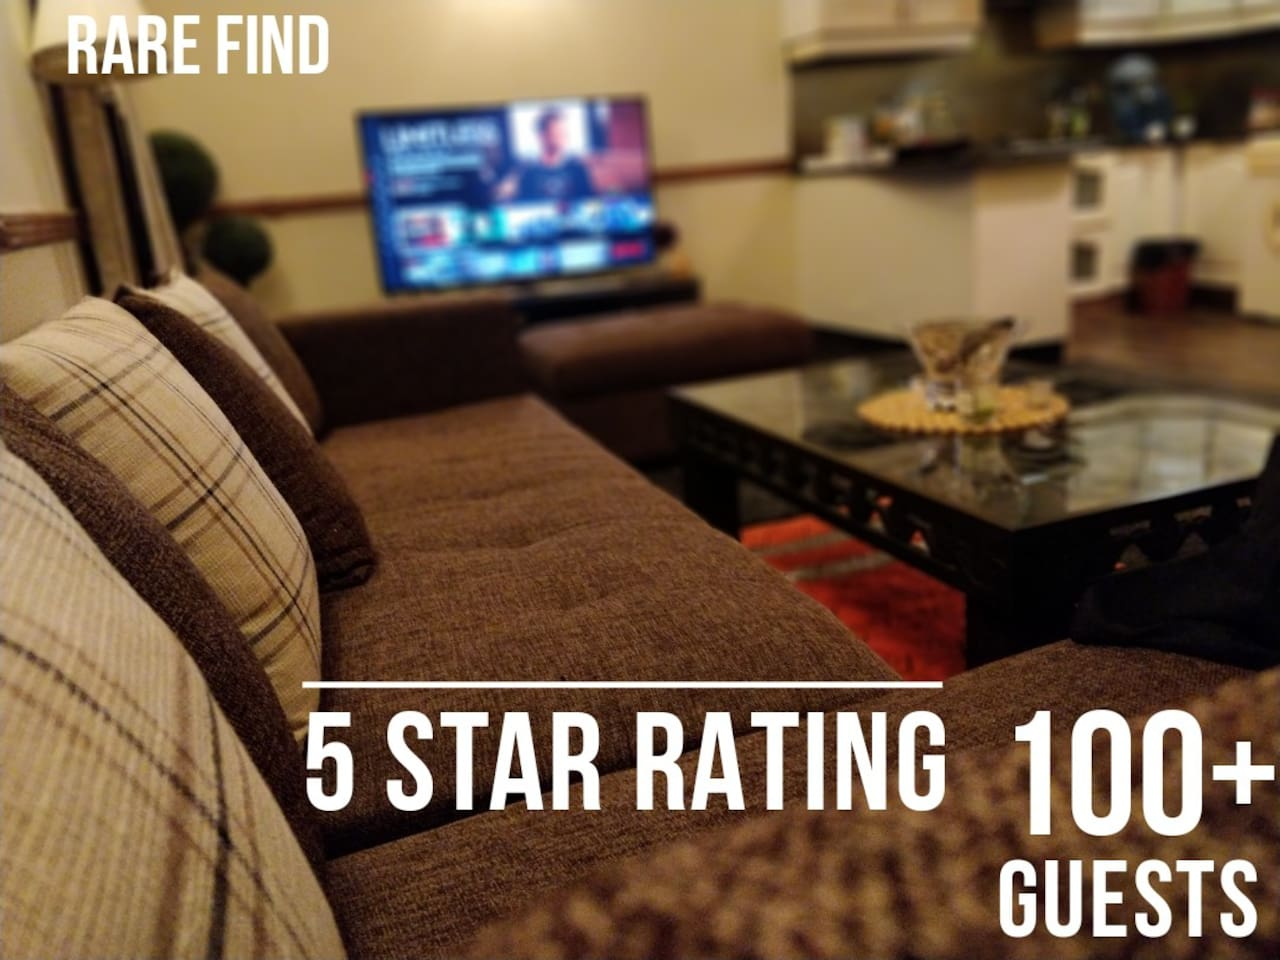 With hosting experience of 100+ guests and counting